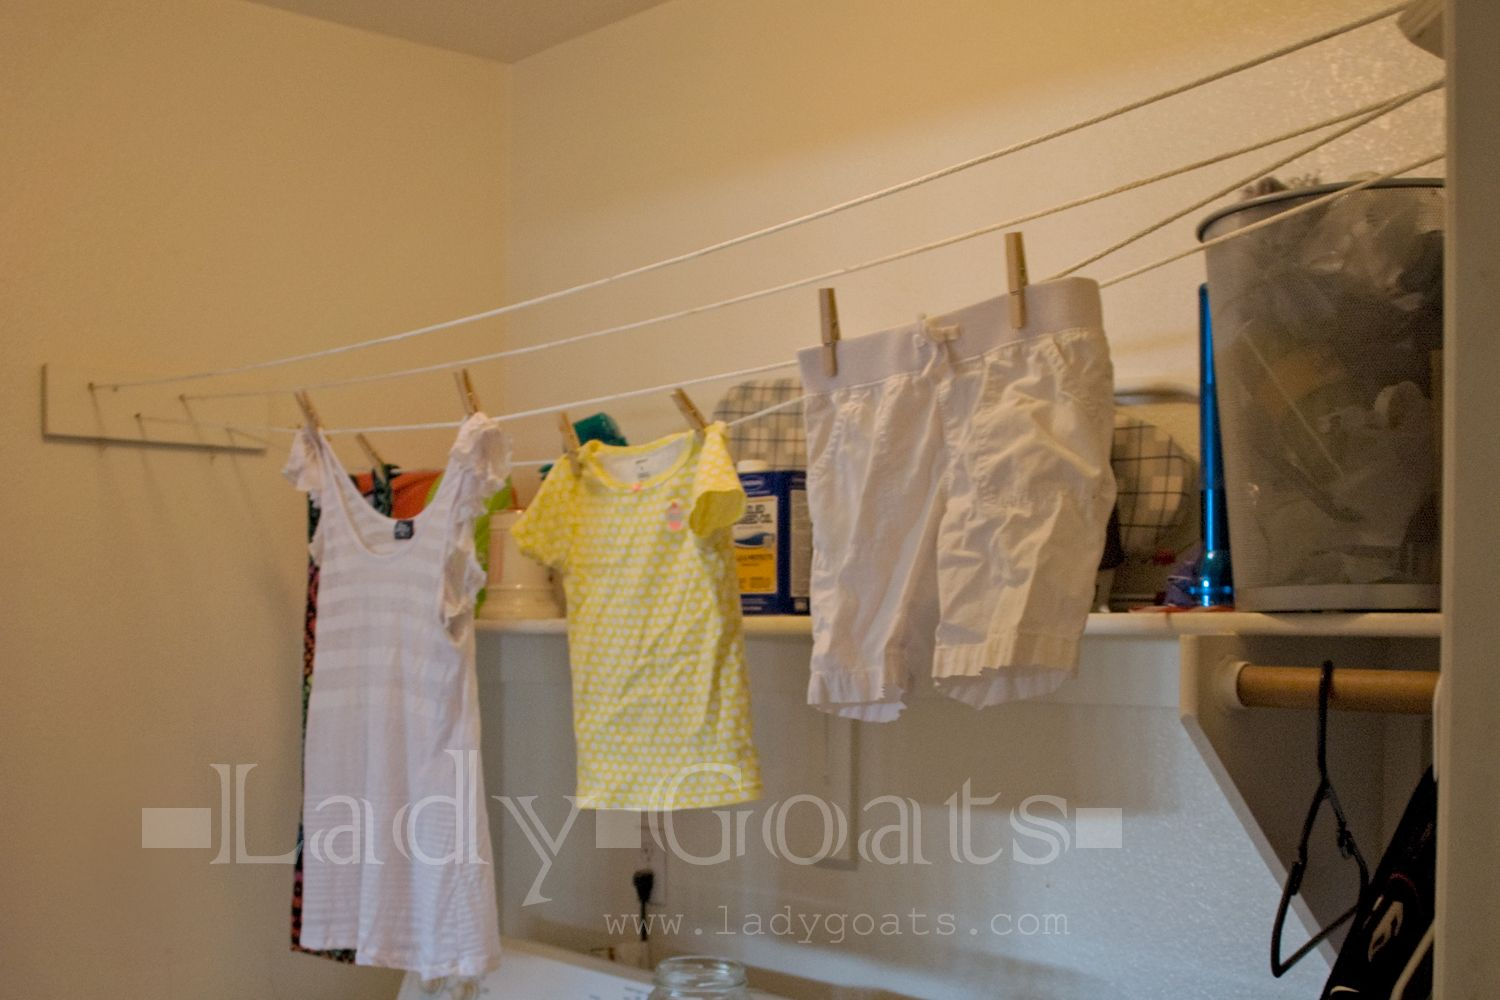 Free Or Very Cheap Diy Indoor Clothesline Diy Laundry Room